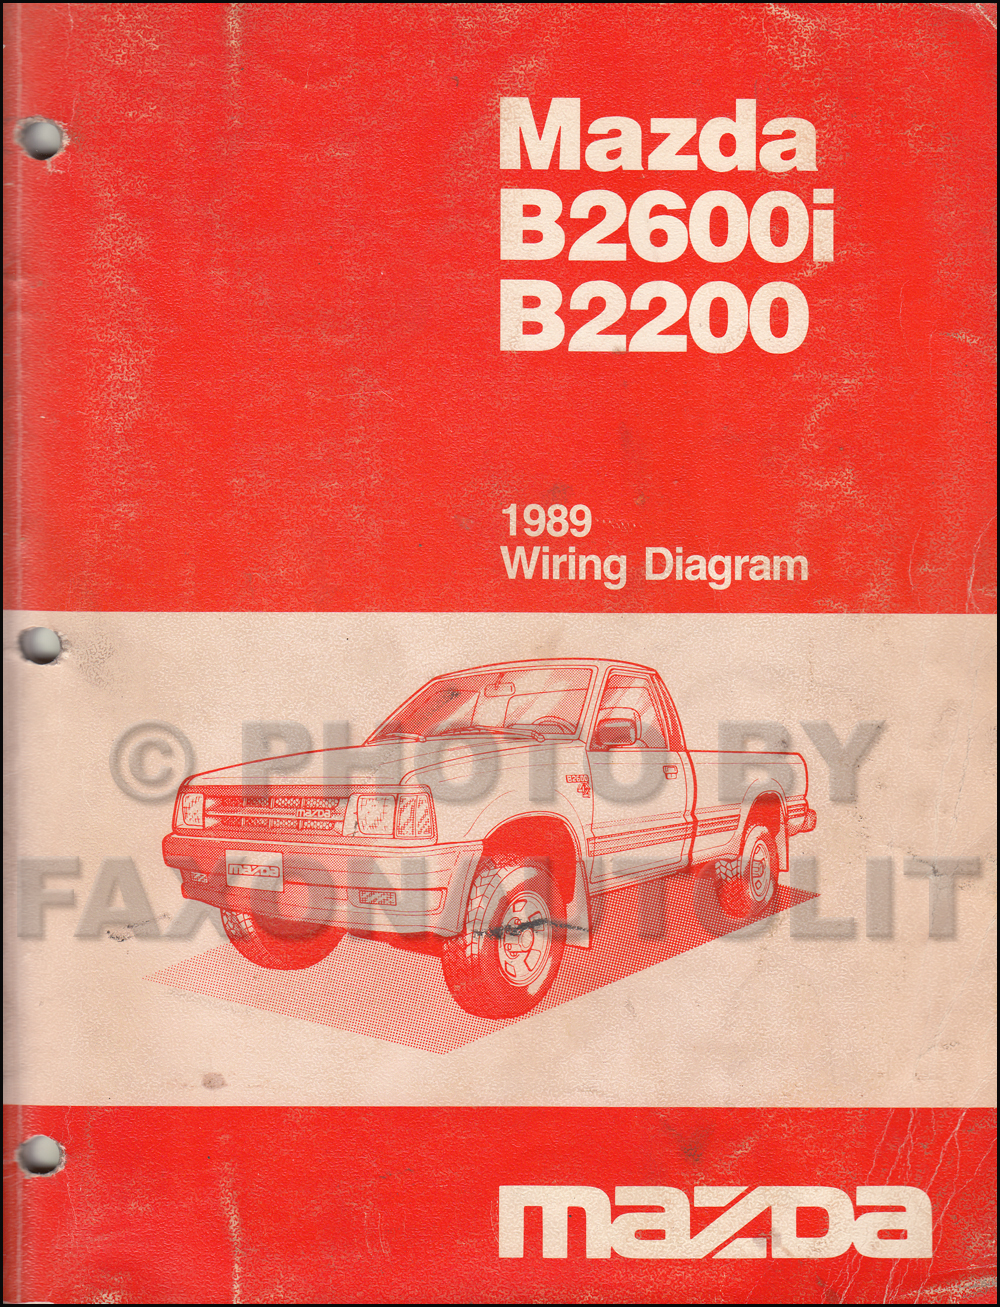 1989 Mazda B2200 Engine Parts Diagram Wiring Schematic 1986 B2000 B2600i Pickup Truck Manual Original Rh Faxonautoliterature Com Vacuum Hose